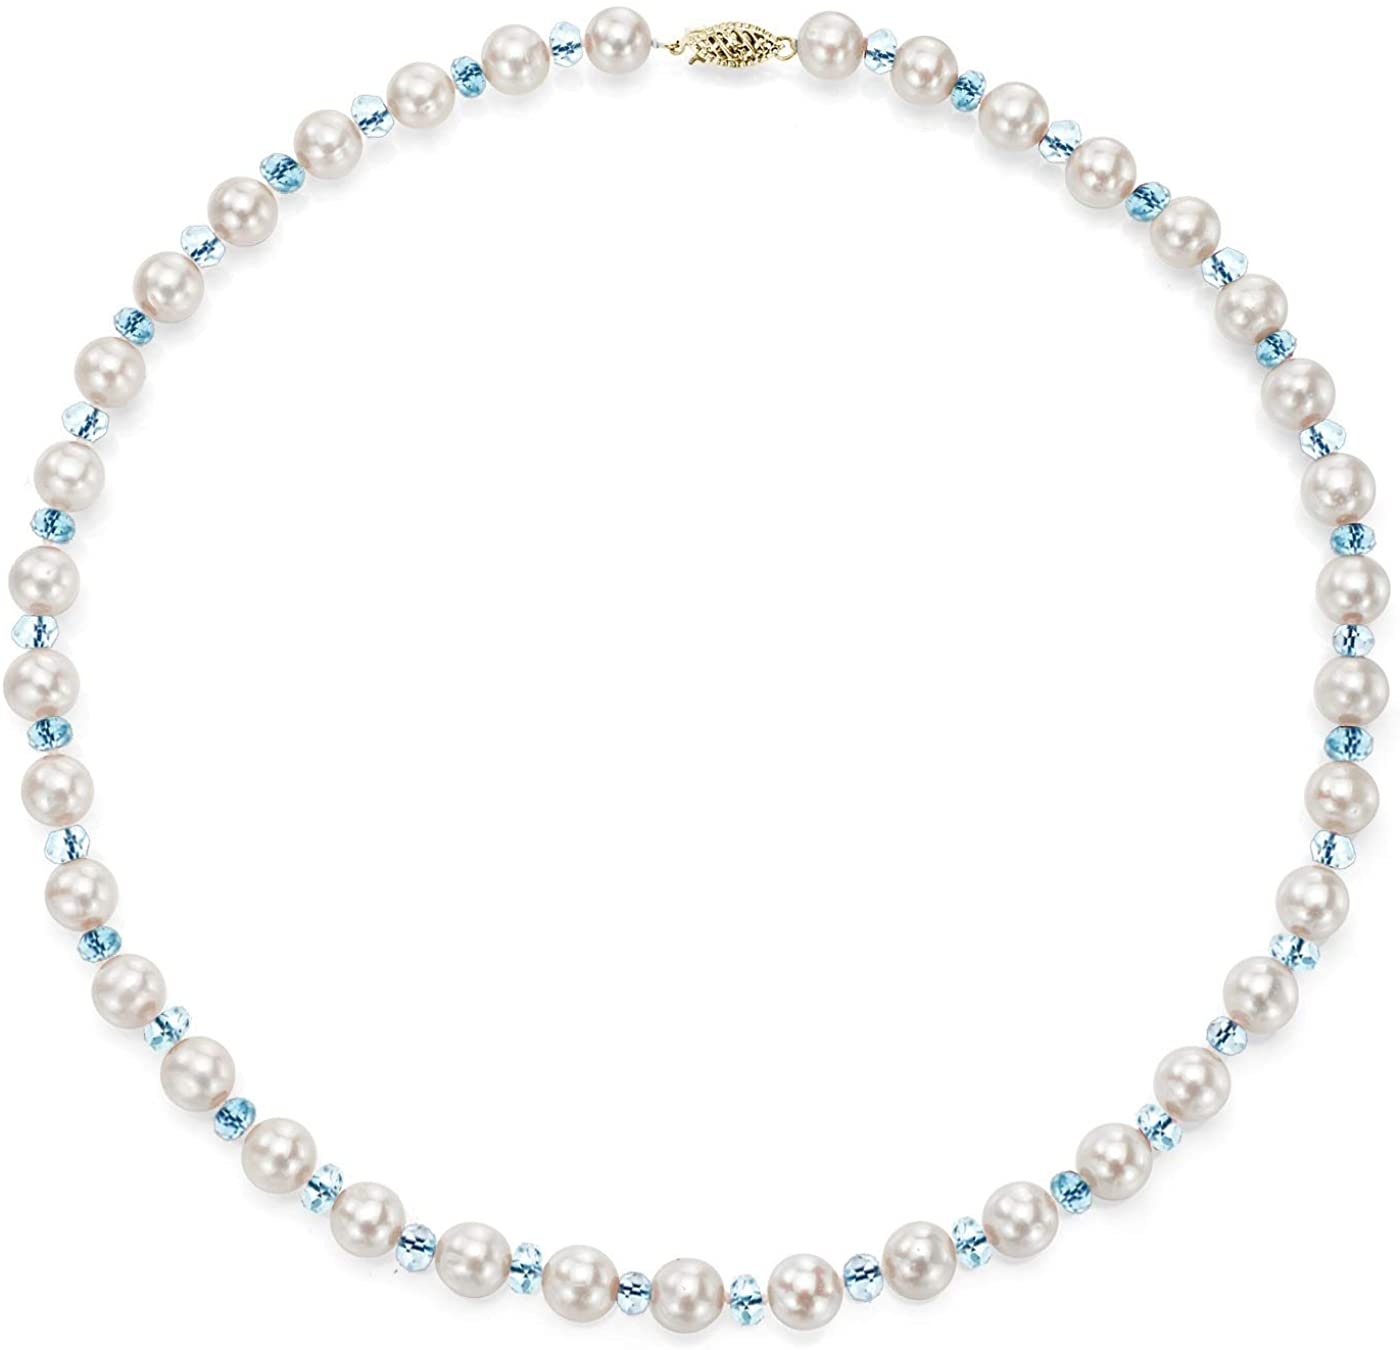 14K Yellow Gold Freshwater Cultured White Pearl Necklace Simulated Gemstone Jewelry for Women 18 inch (Choice of Length)